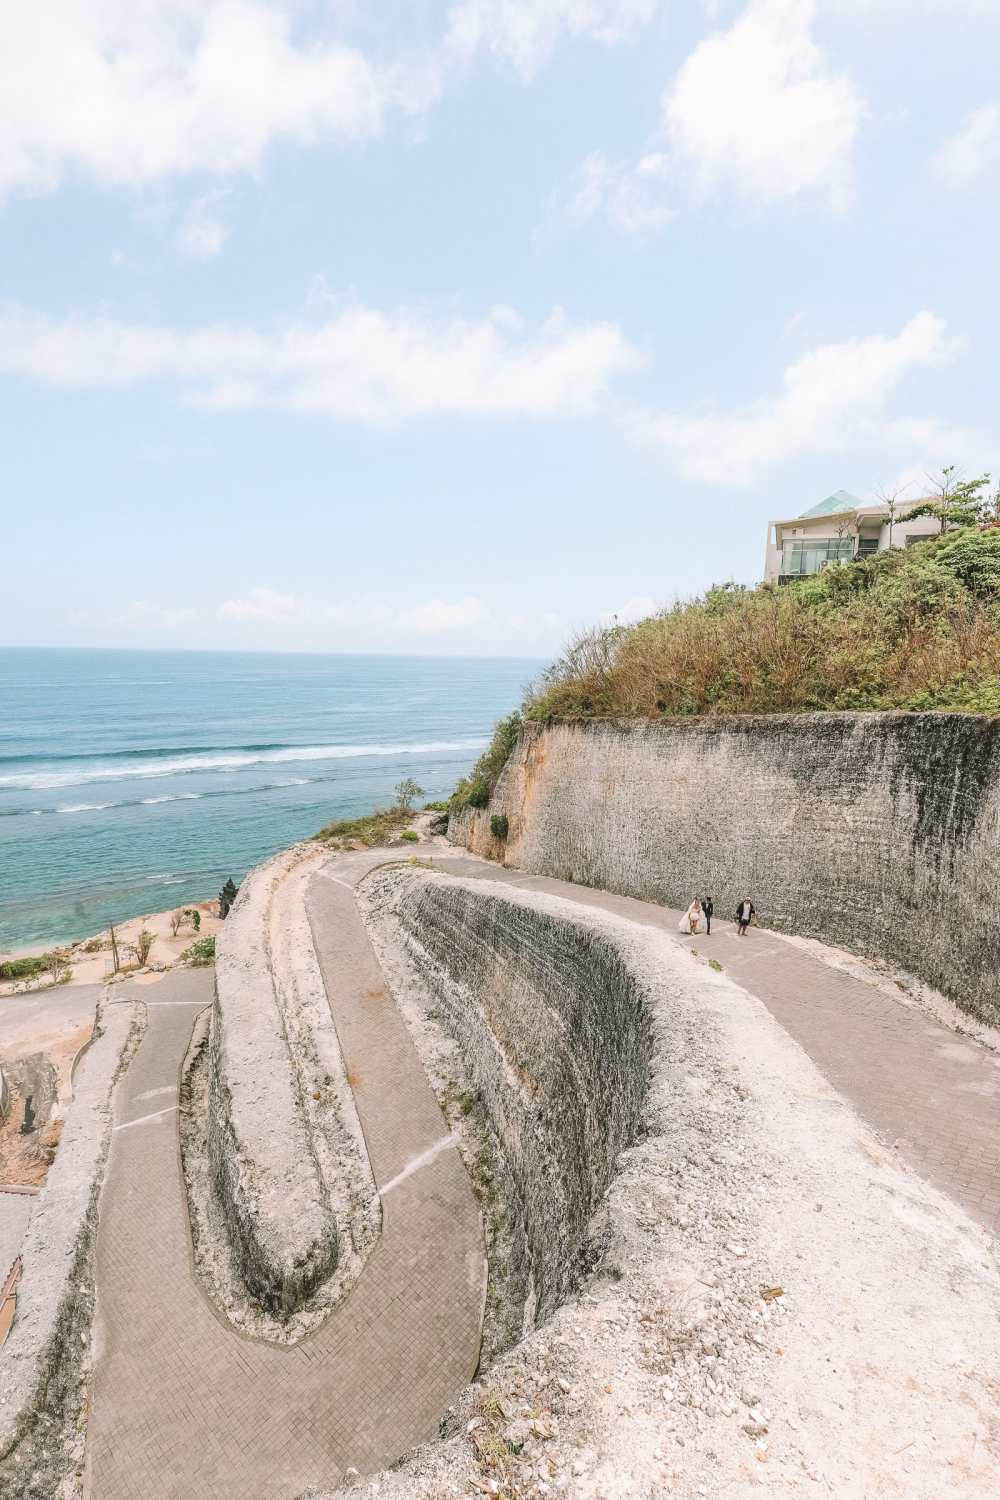 Bali Travel Diary - Ubud Palace, Uluwatu and Tanah Lot (15)